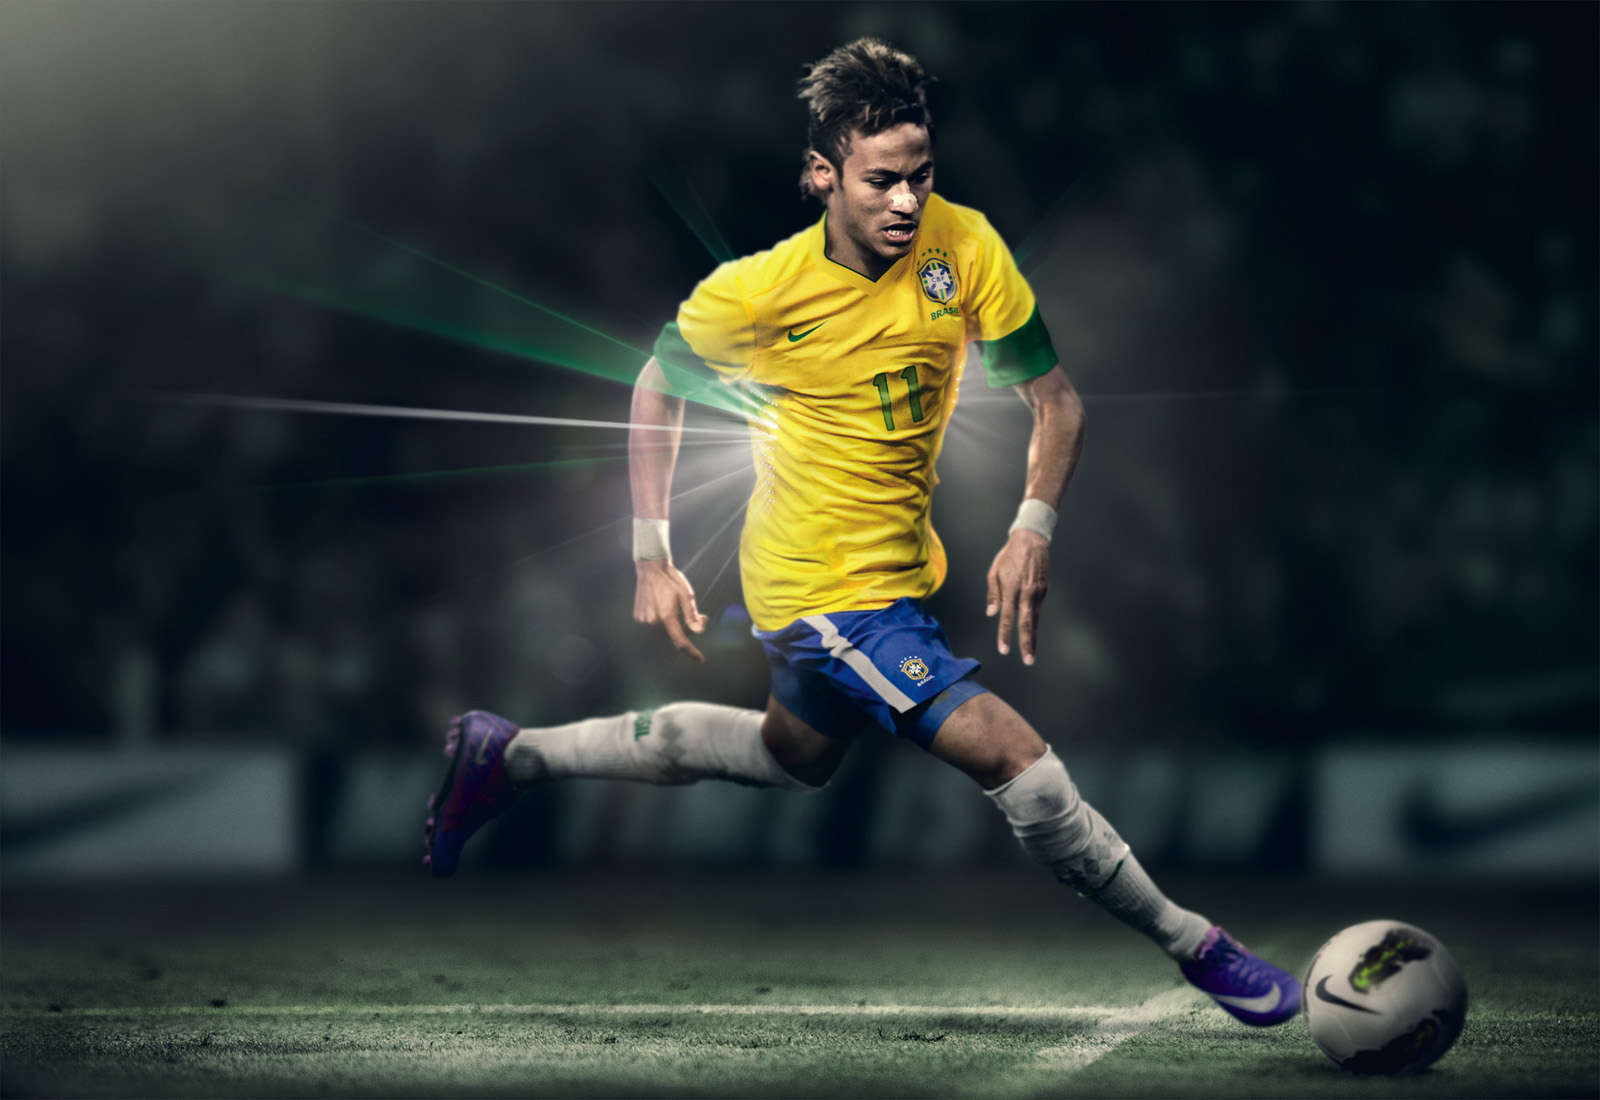 Neymar Wallpapers High Resolution and Quality Download 1600x1100